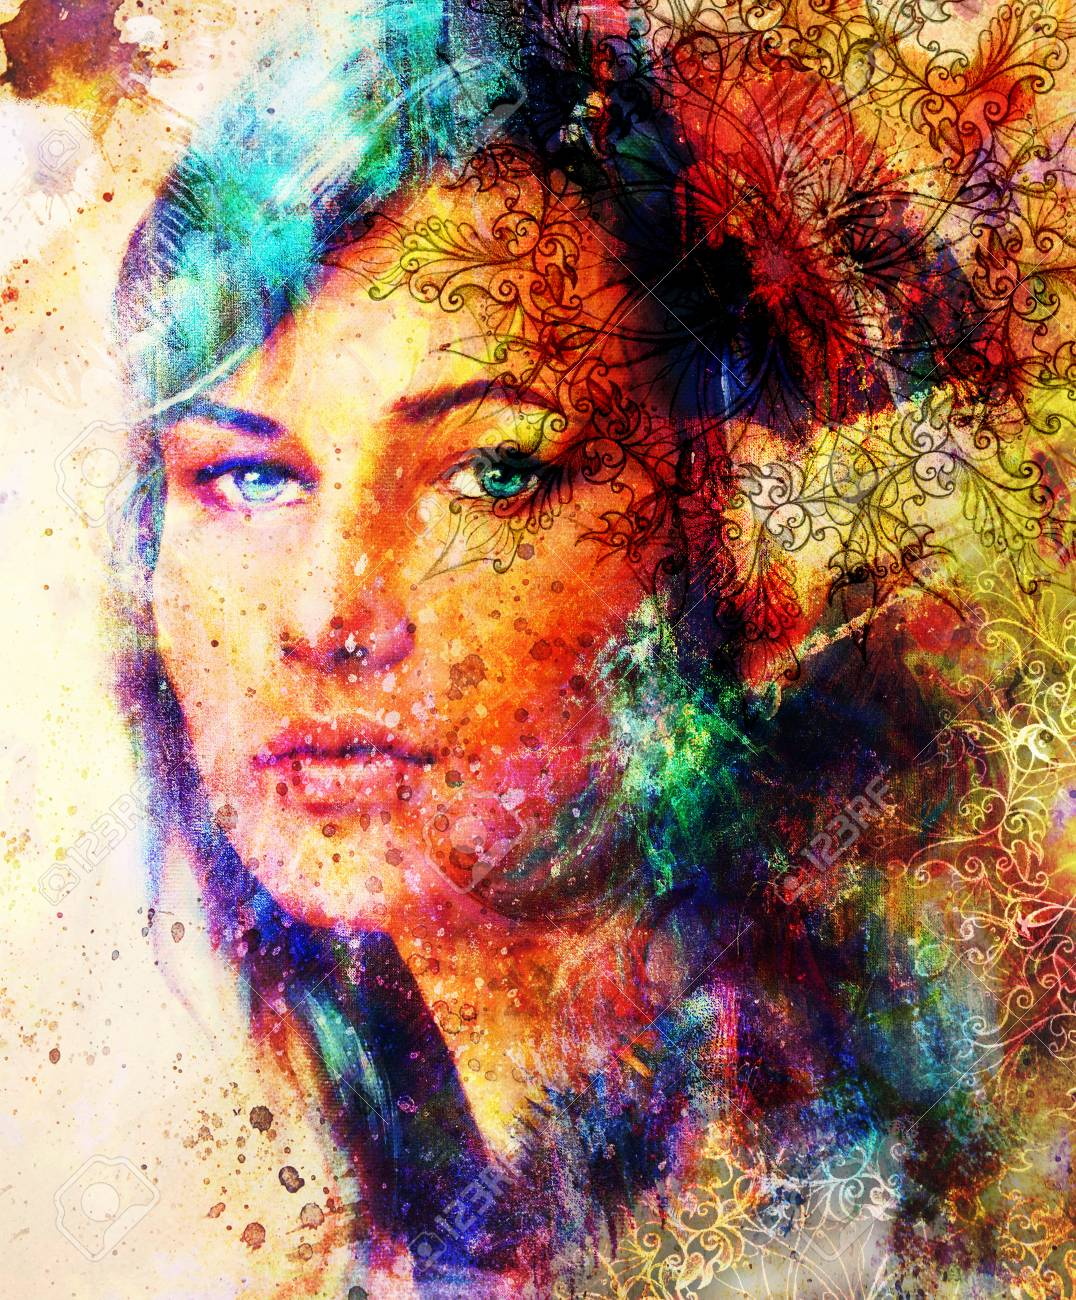 Beautiful Painting Goddess Woman with ornamental mandala and color abstract background.